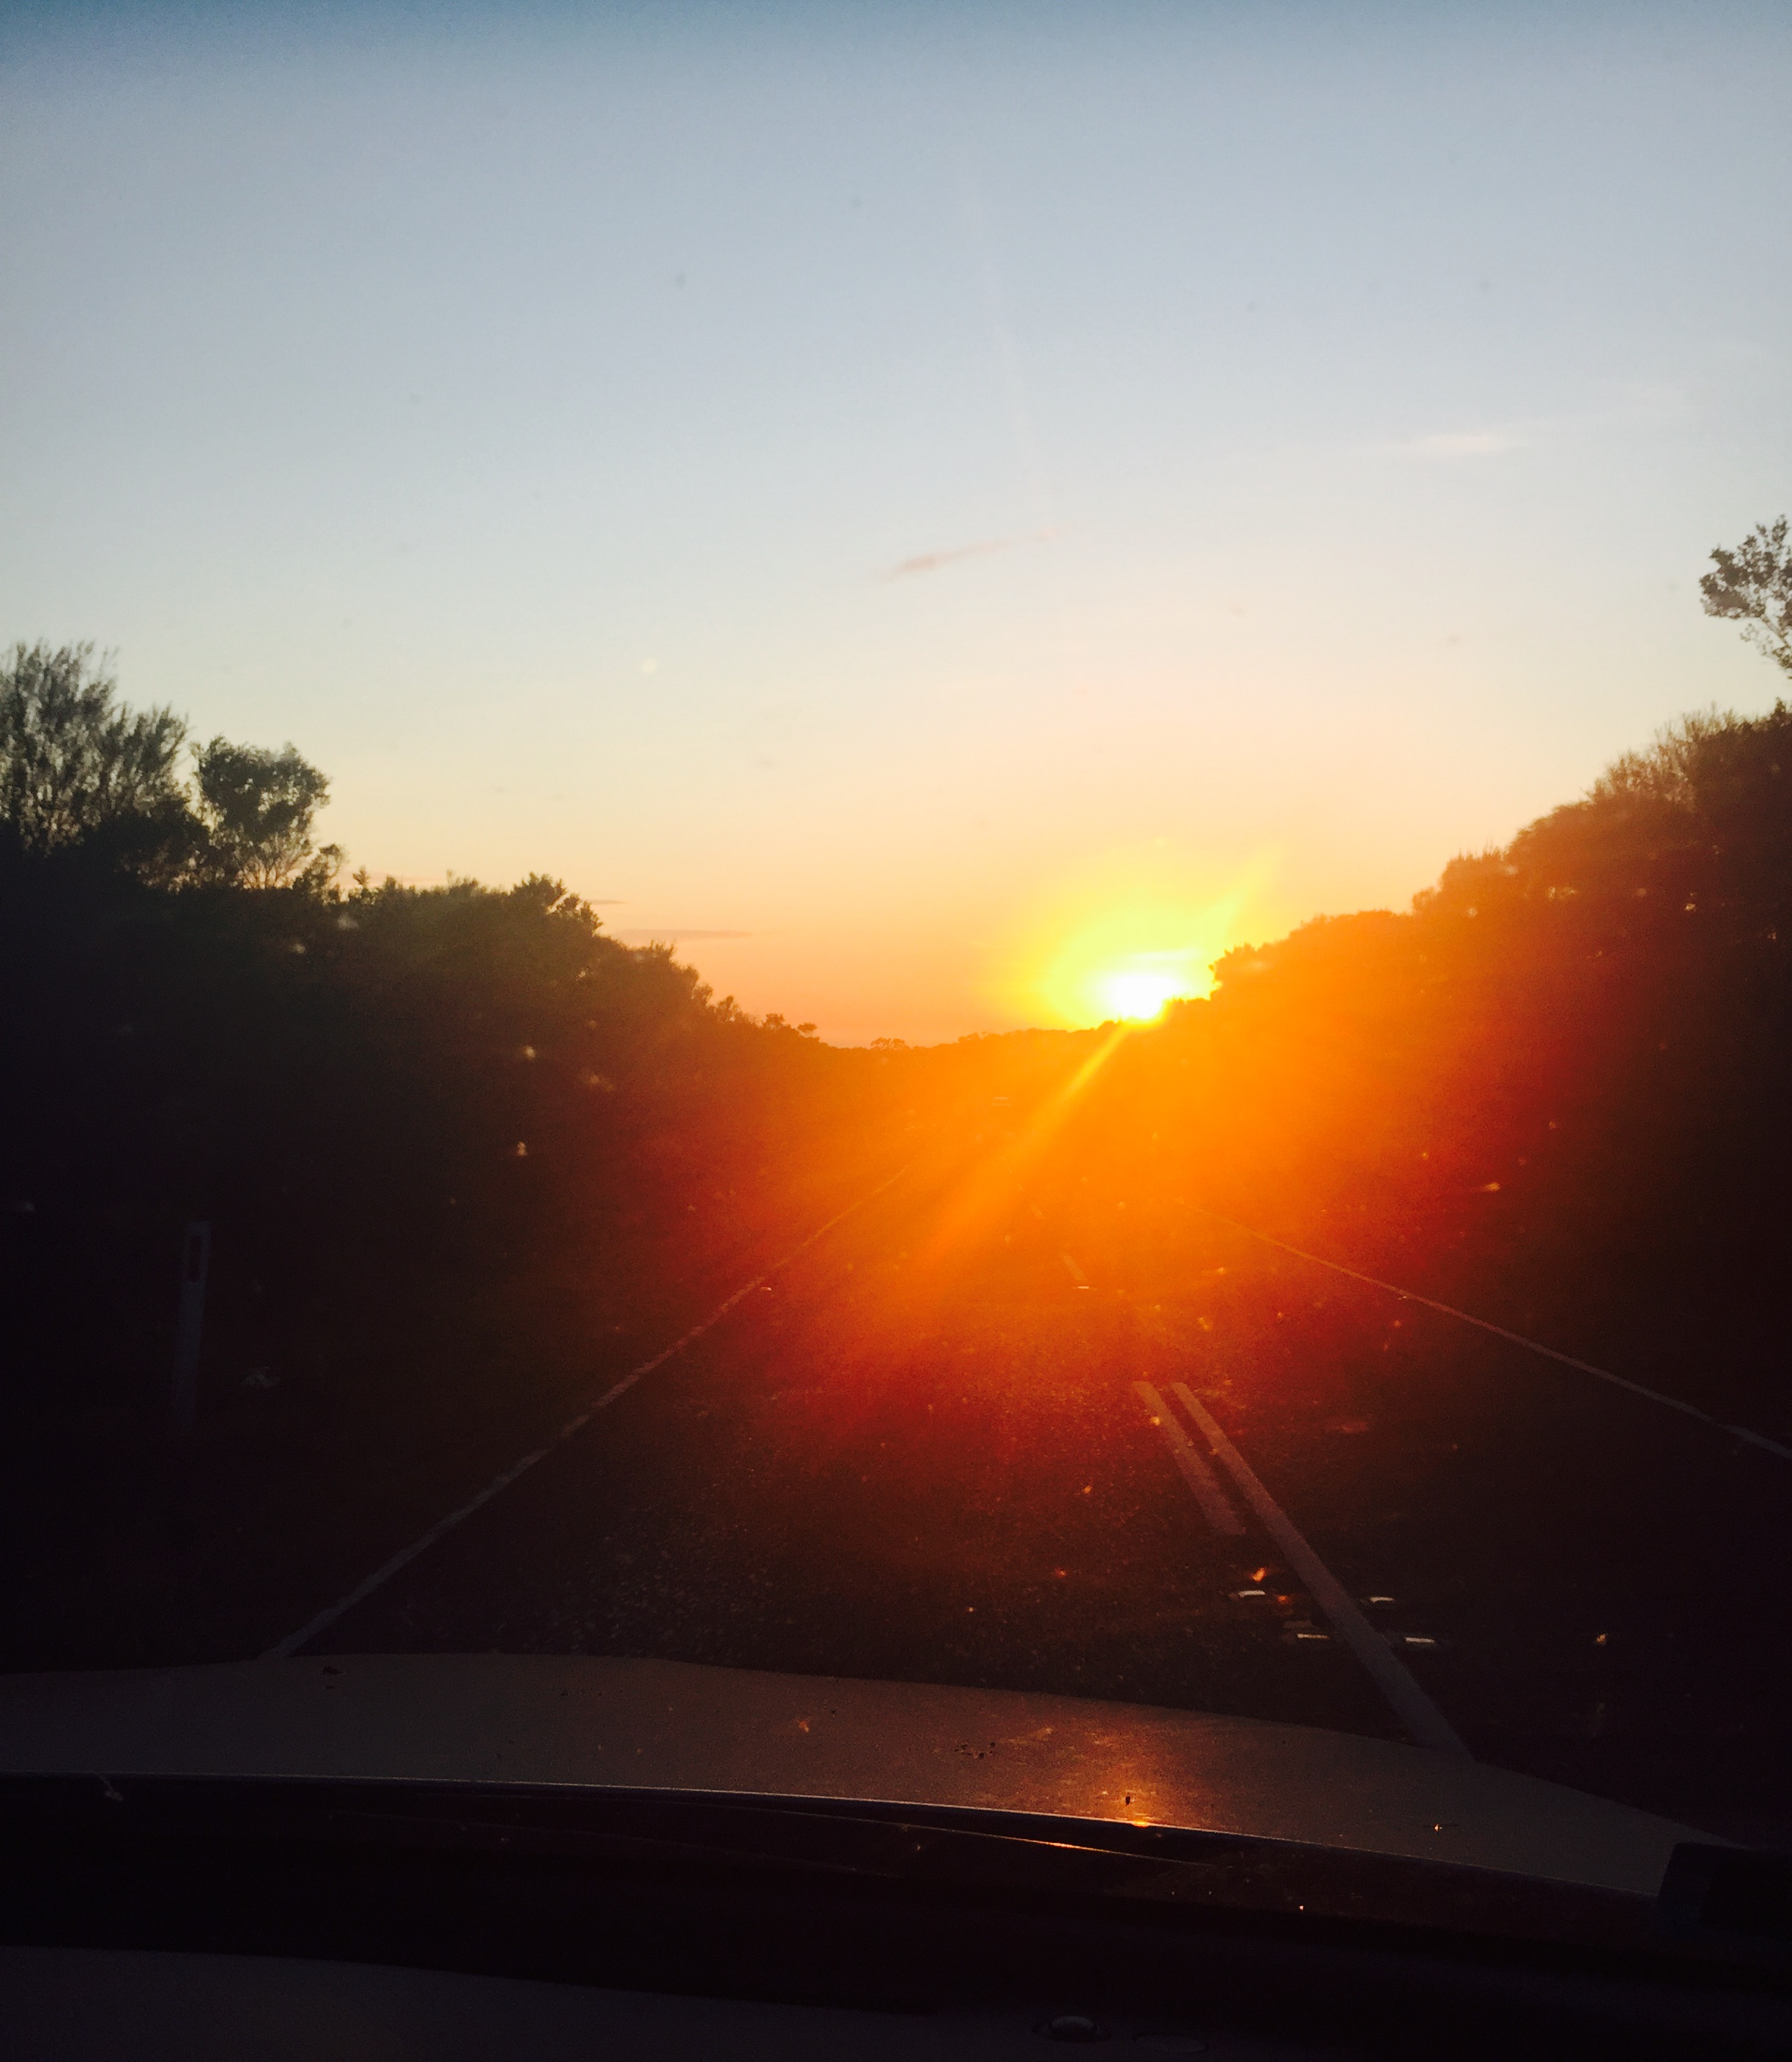 Sunrise from the car